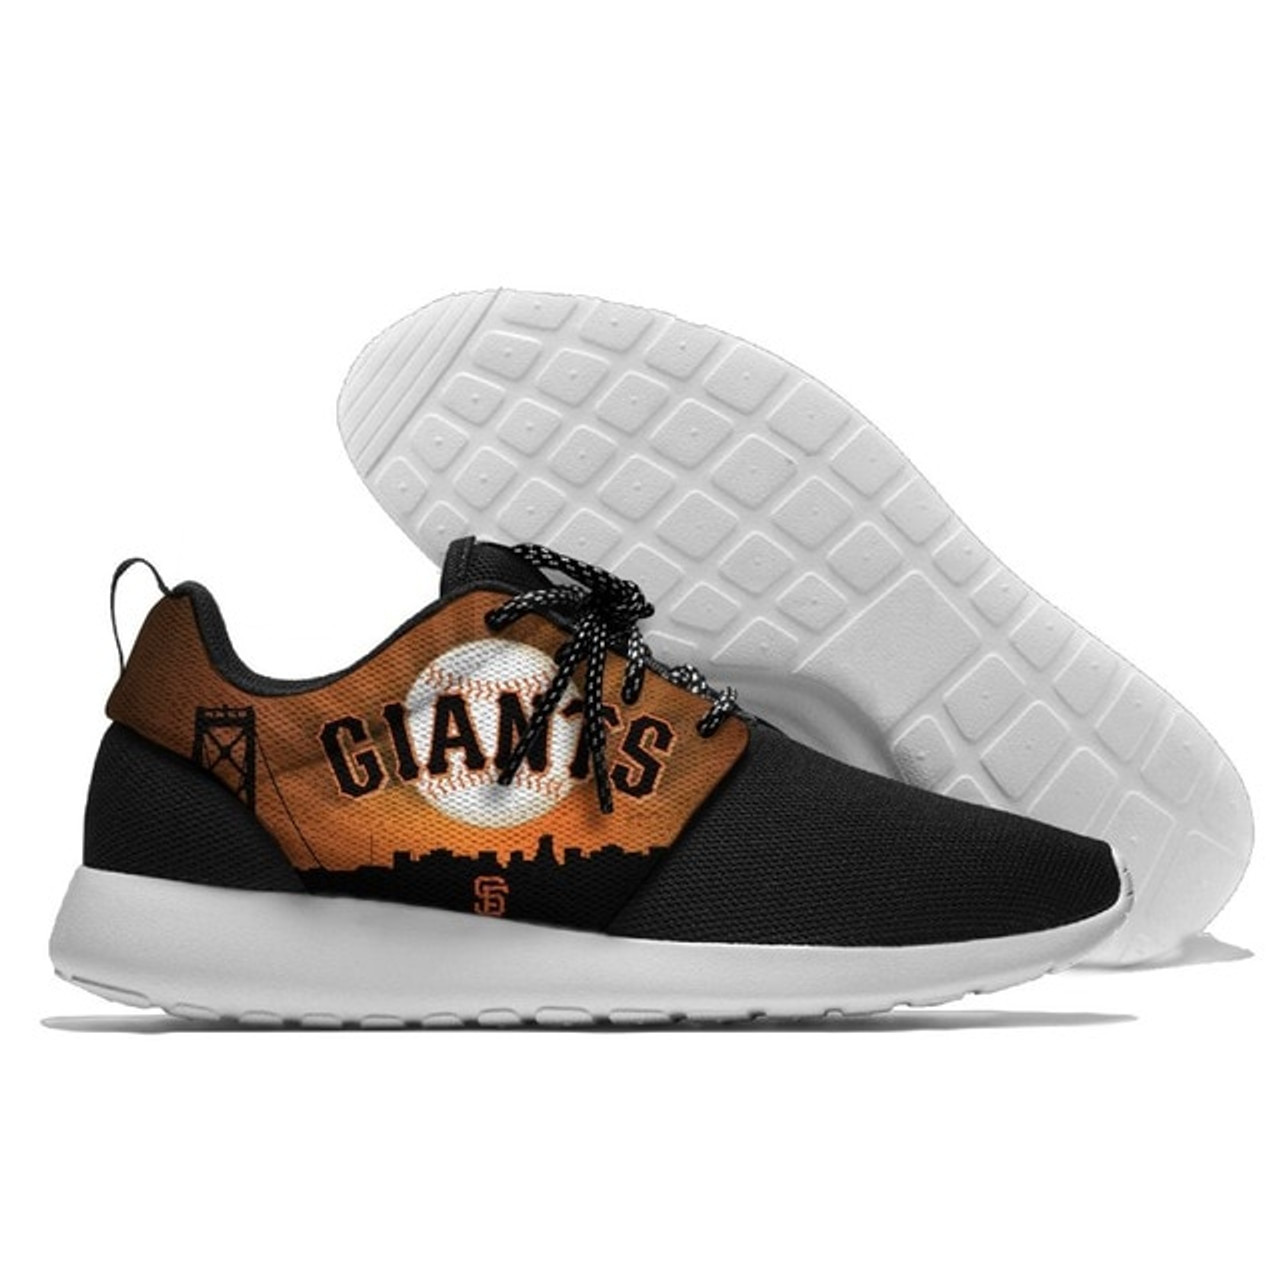 **(NEW-OFFICIALLY-LICENSED-M.L.B.SAN-FRANCISCO-GIANTS-RUNNING-SHOES,MENS-OR-WOMENS-ROSHE-STYLE,LIGHT-WEIGHT-SPORT-PREMIUM-RUNNING-SHOES/WITH-OFFICIAL-GIANTS-TEAM-COLORS & GIANTS-TEAM-LOGOS,SPECIAL-CUSHIONED-COMFORT-INSOLES/COMES-IN-ALL-SIZES:)**